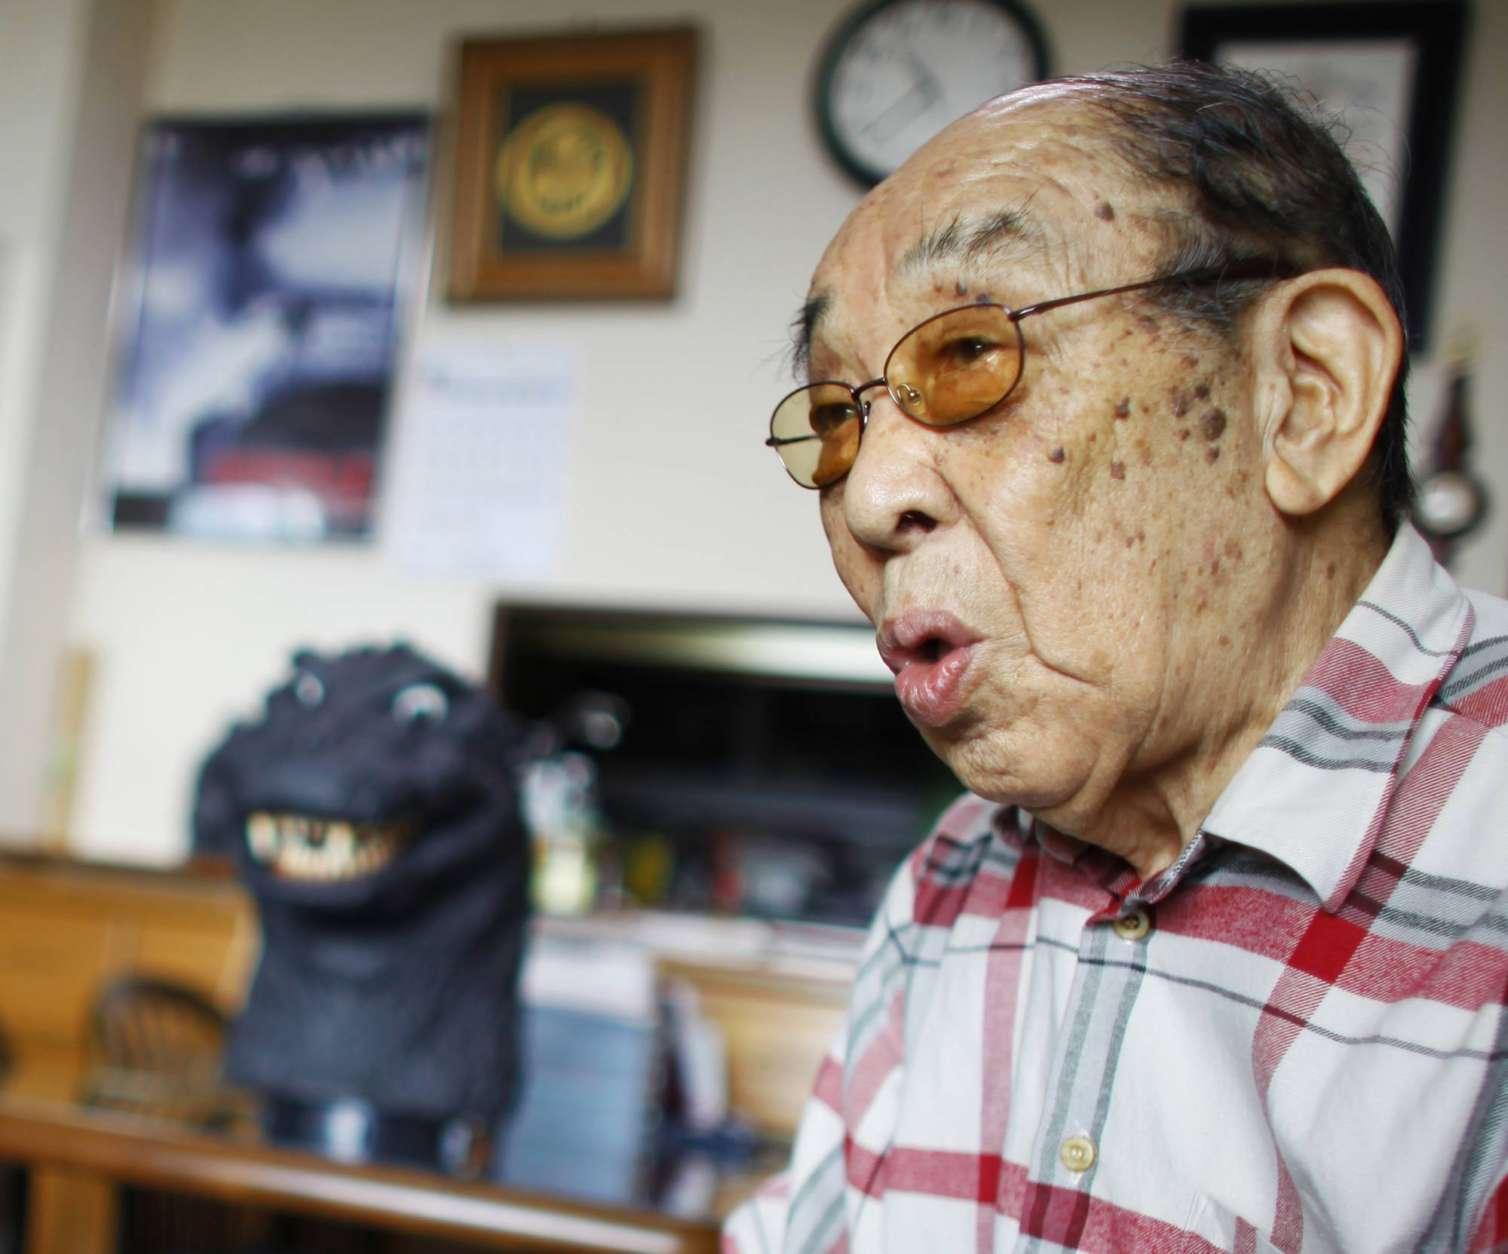 FILE - In this April 28, 2014 photo, original Godzilla suit actor Haruo Nakajima, who has played his role as the monster, speaks during an interview at his home in Sagamihara, near Tokyo. Nakajima, the actor who stomped in a rubber suit to portray the original 1954 Godzilla, has died on Monday, Aug. 7, 2017. He was 88. (AP Photo/Junji Kurokawa, File)